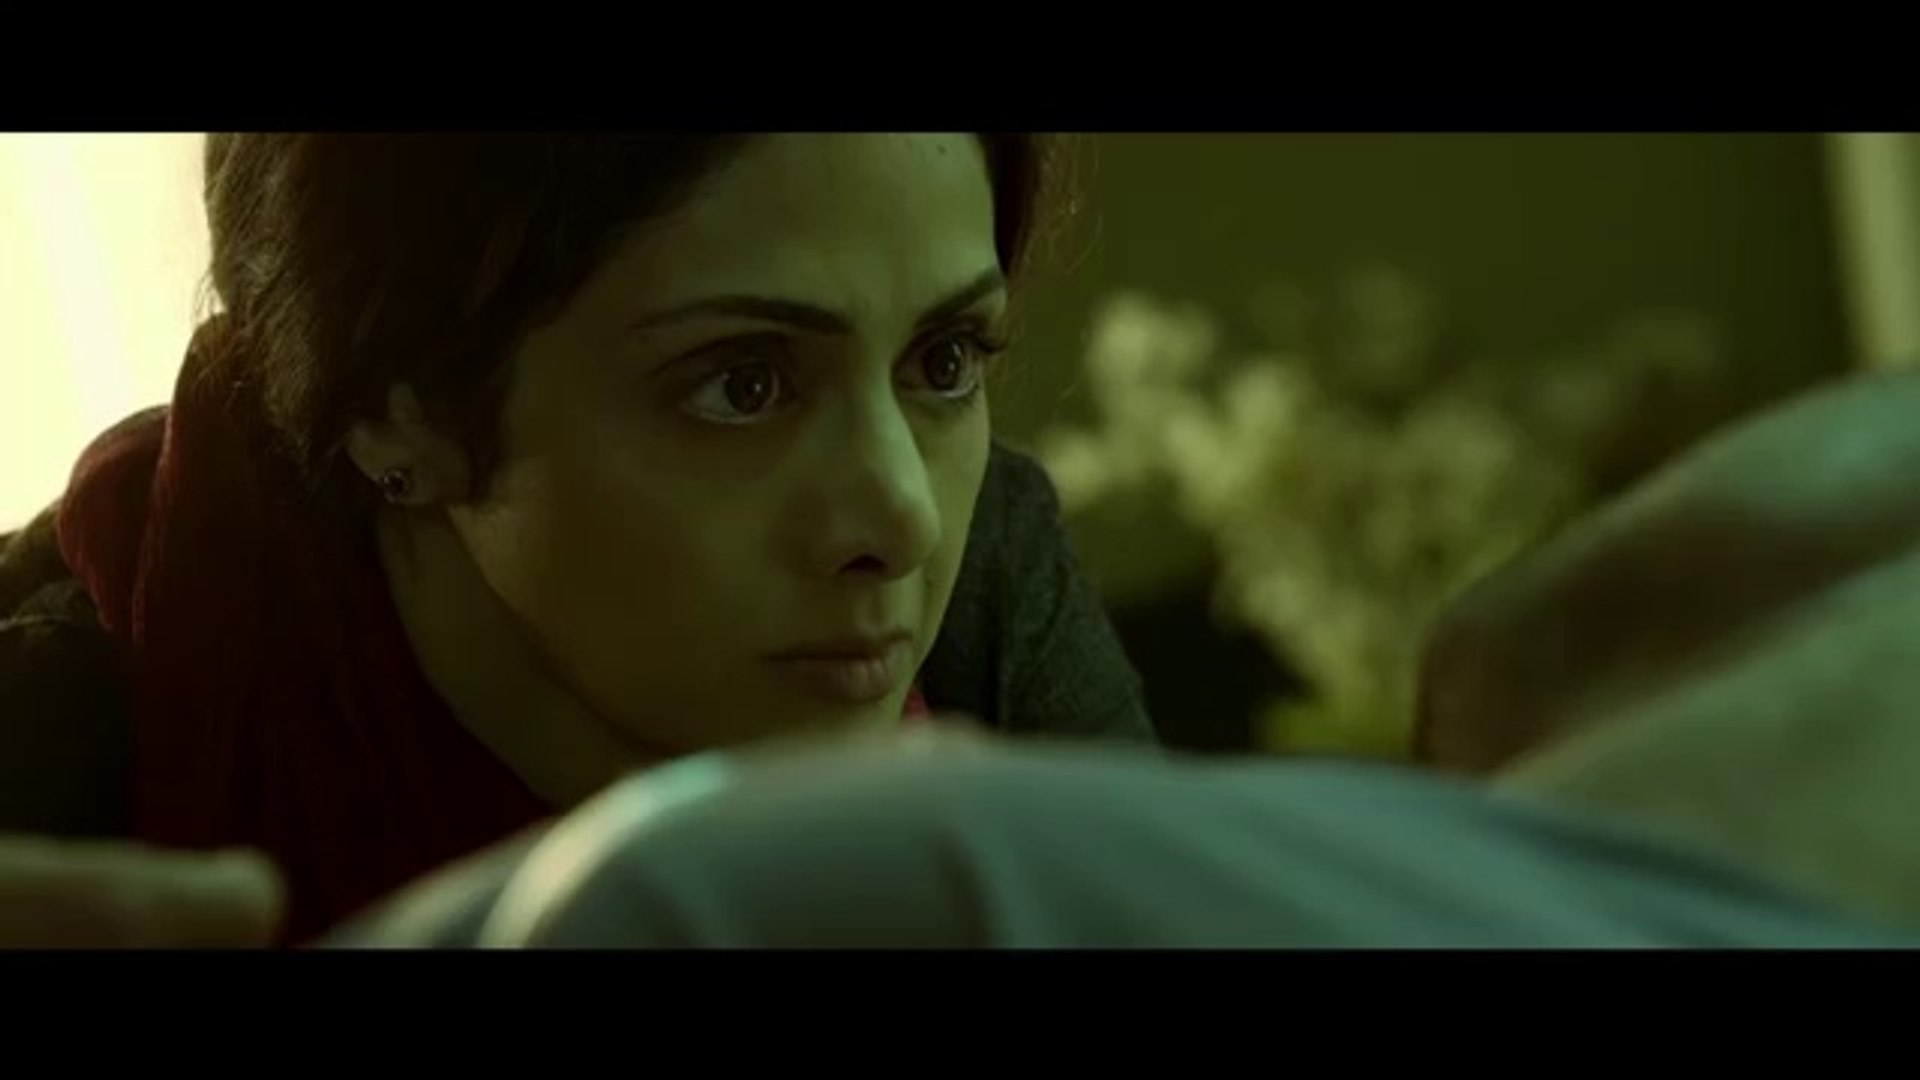 MOM Trailer 2  Hindi  Sridevi  Nawazuddin Siddiqui  Akshaye Khanna  7 July 2017